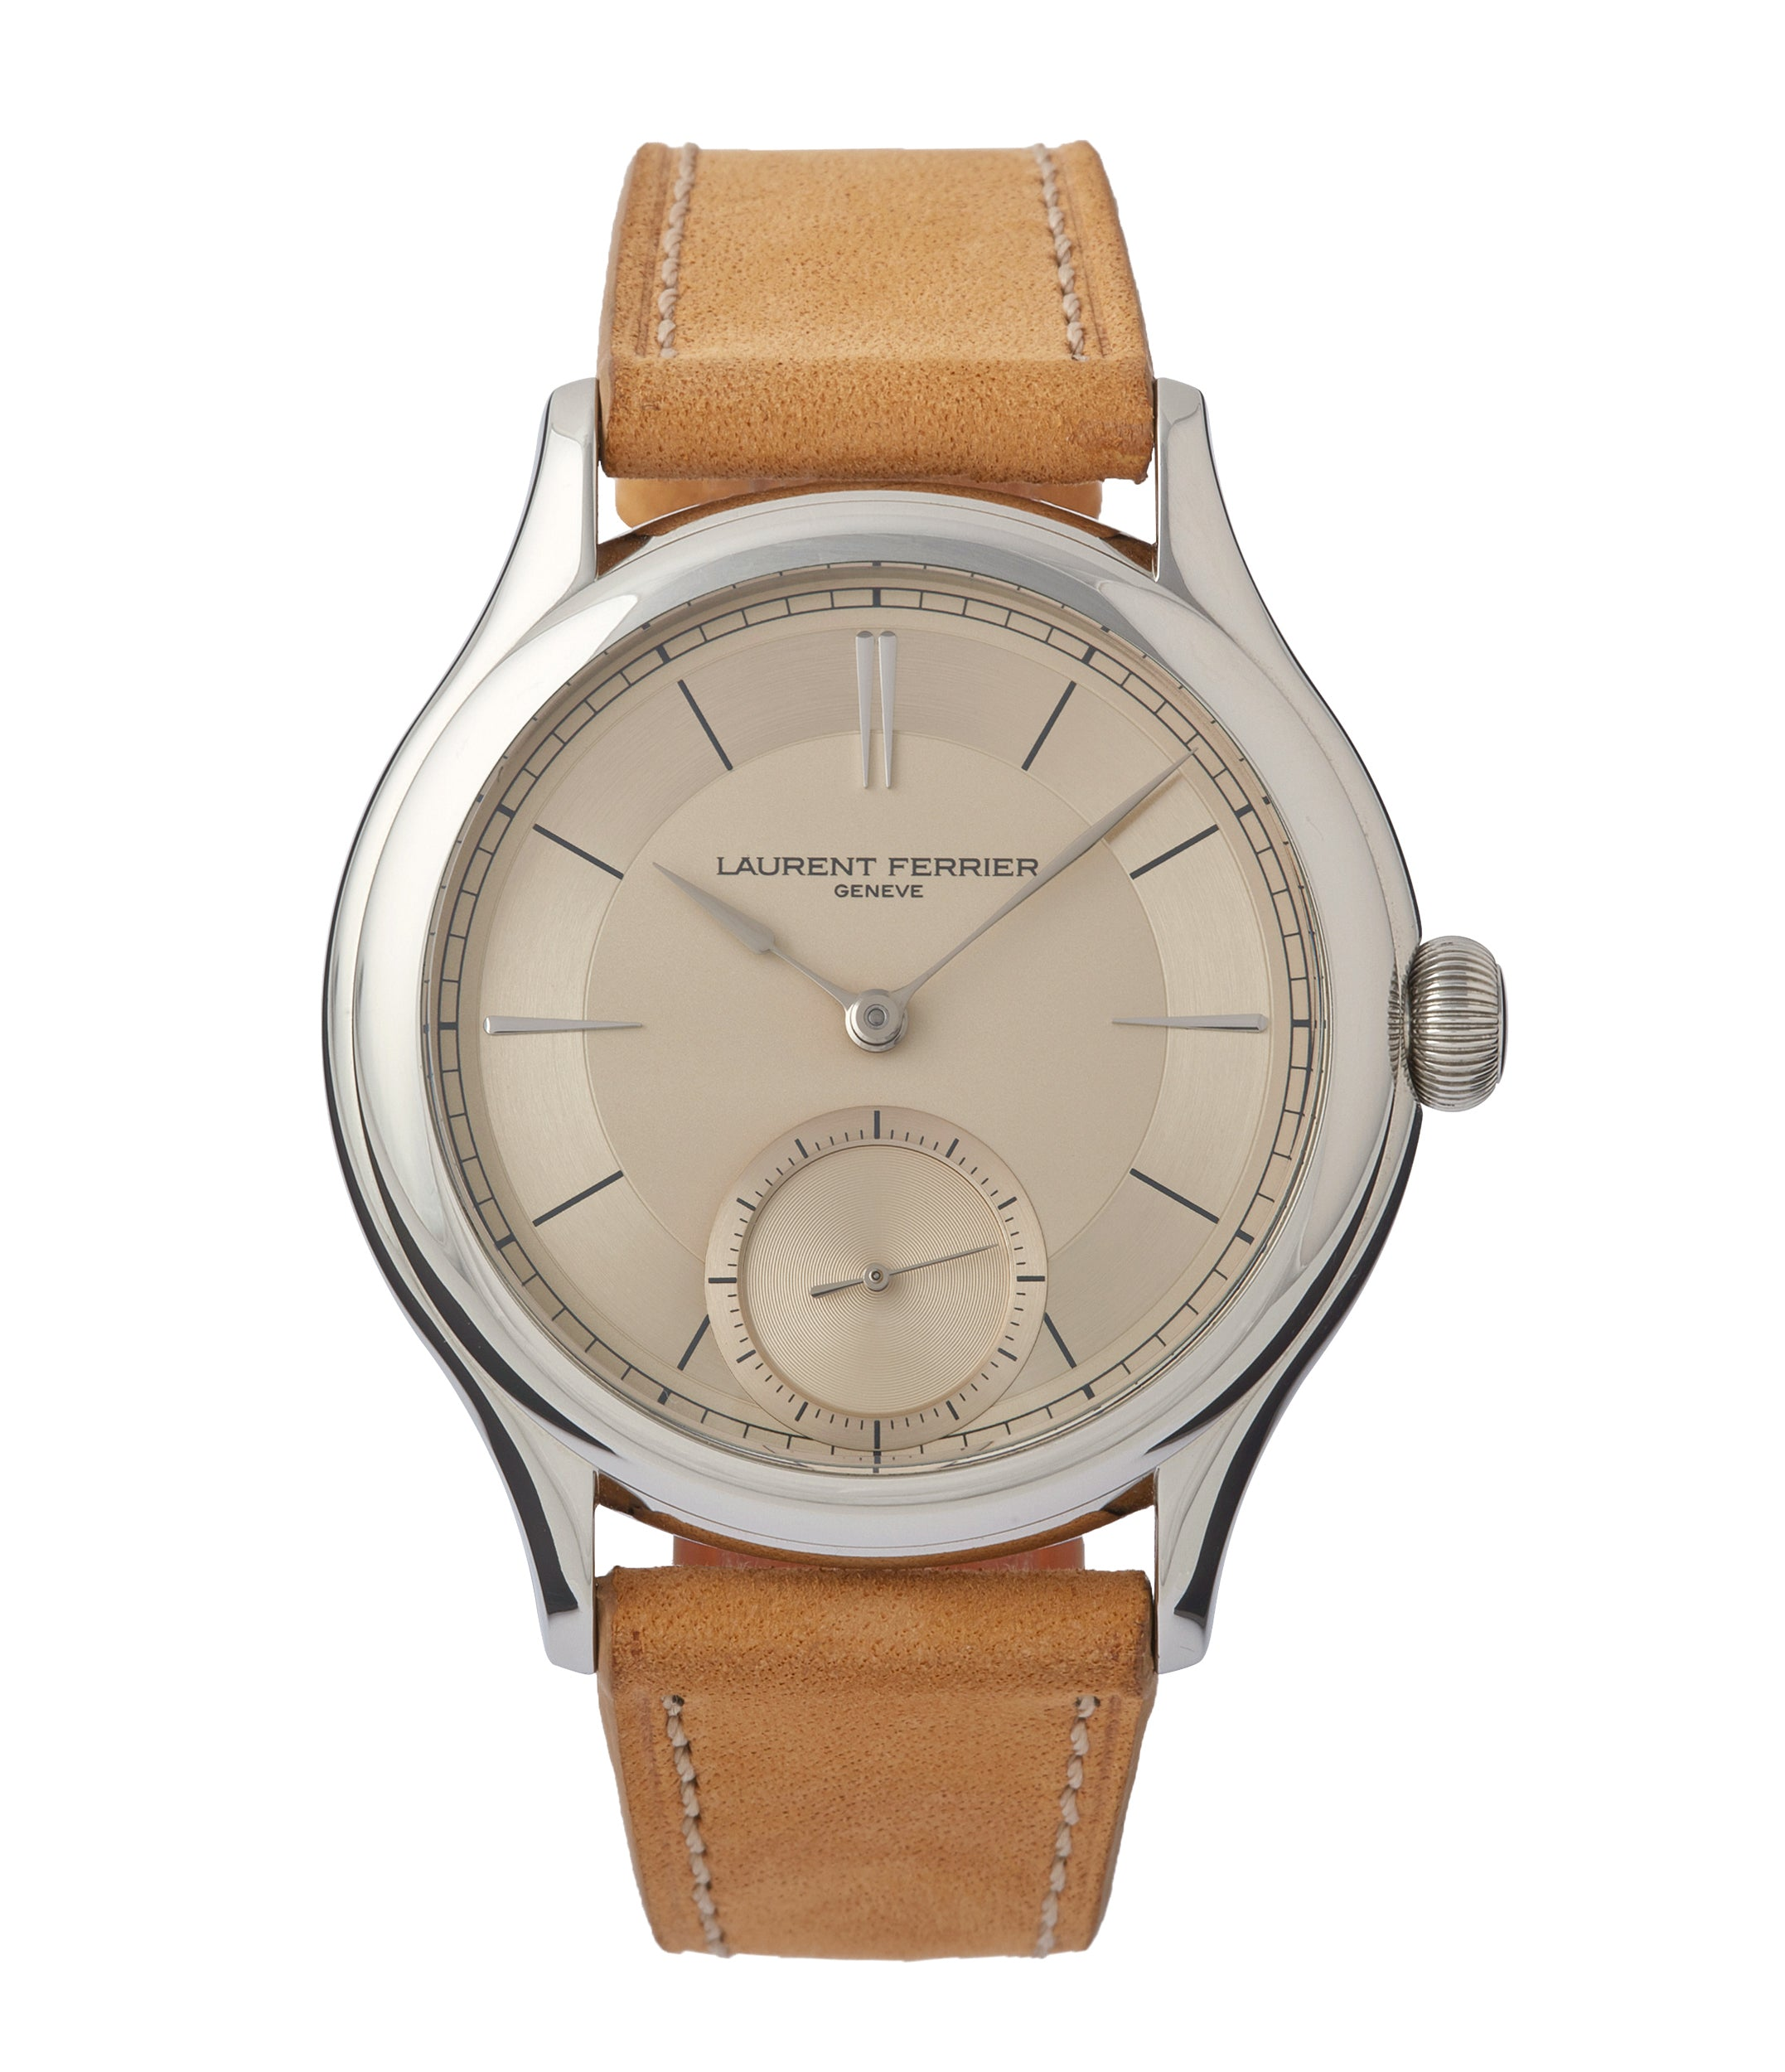 buy Laurent Ferrier Galet Micro-rotor special commission steel champagne dial dress luxury watch for sale online at A Collected Man London UK specialist of rare watches